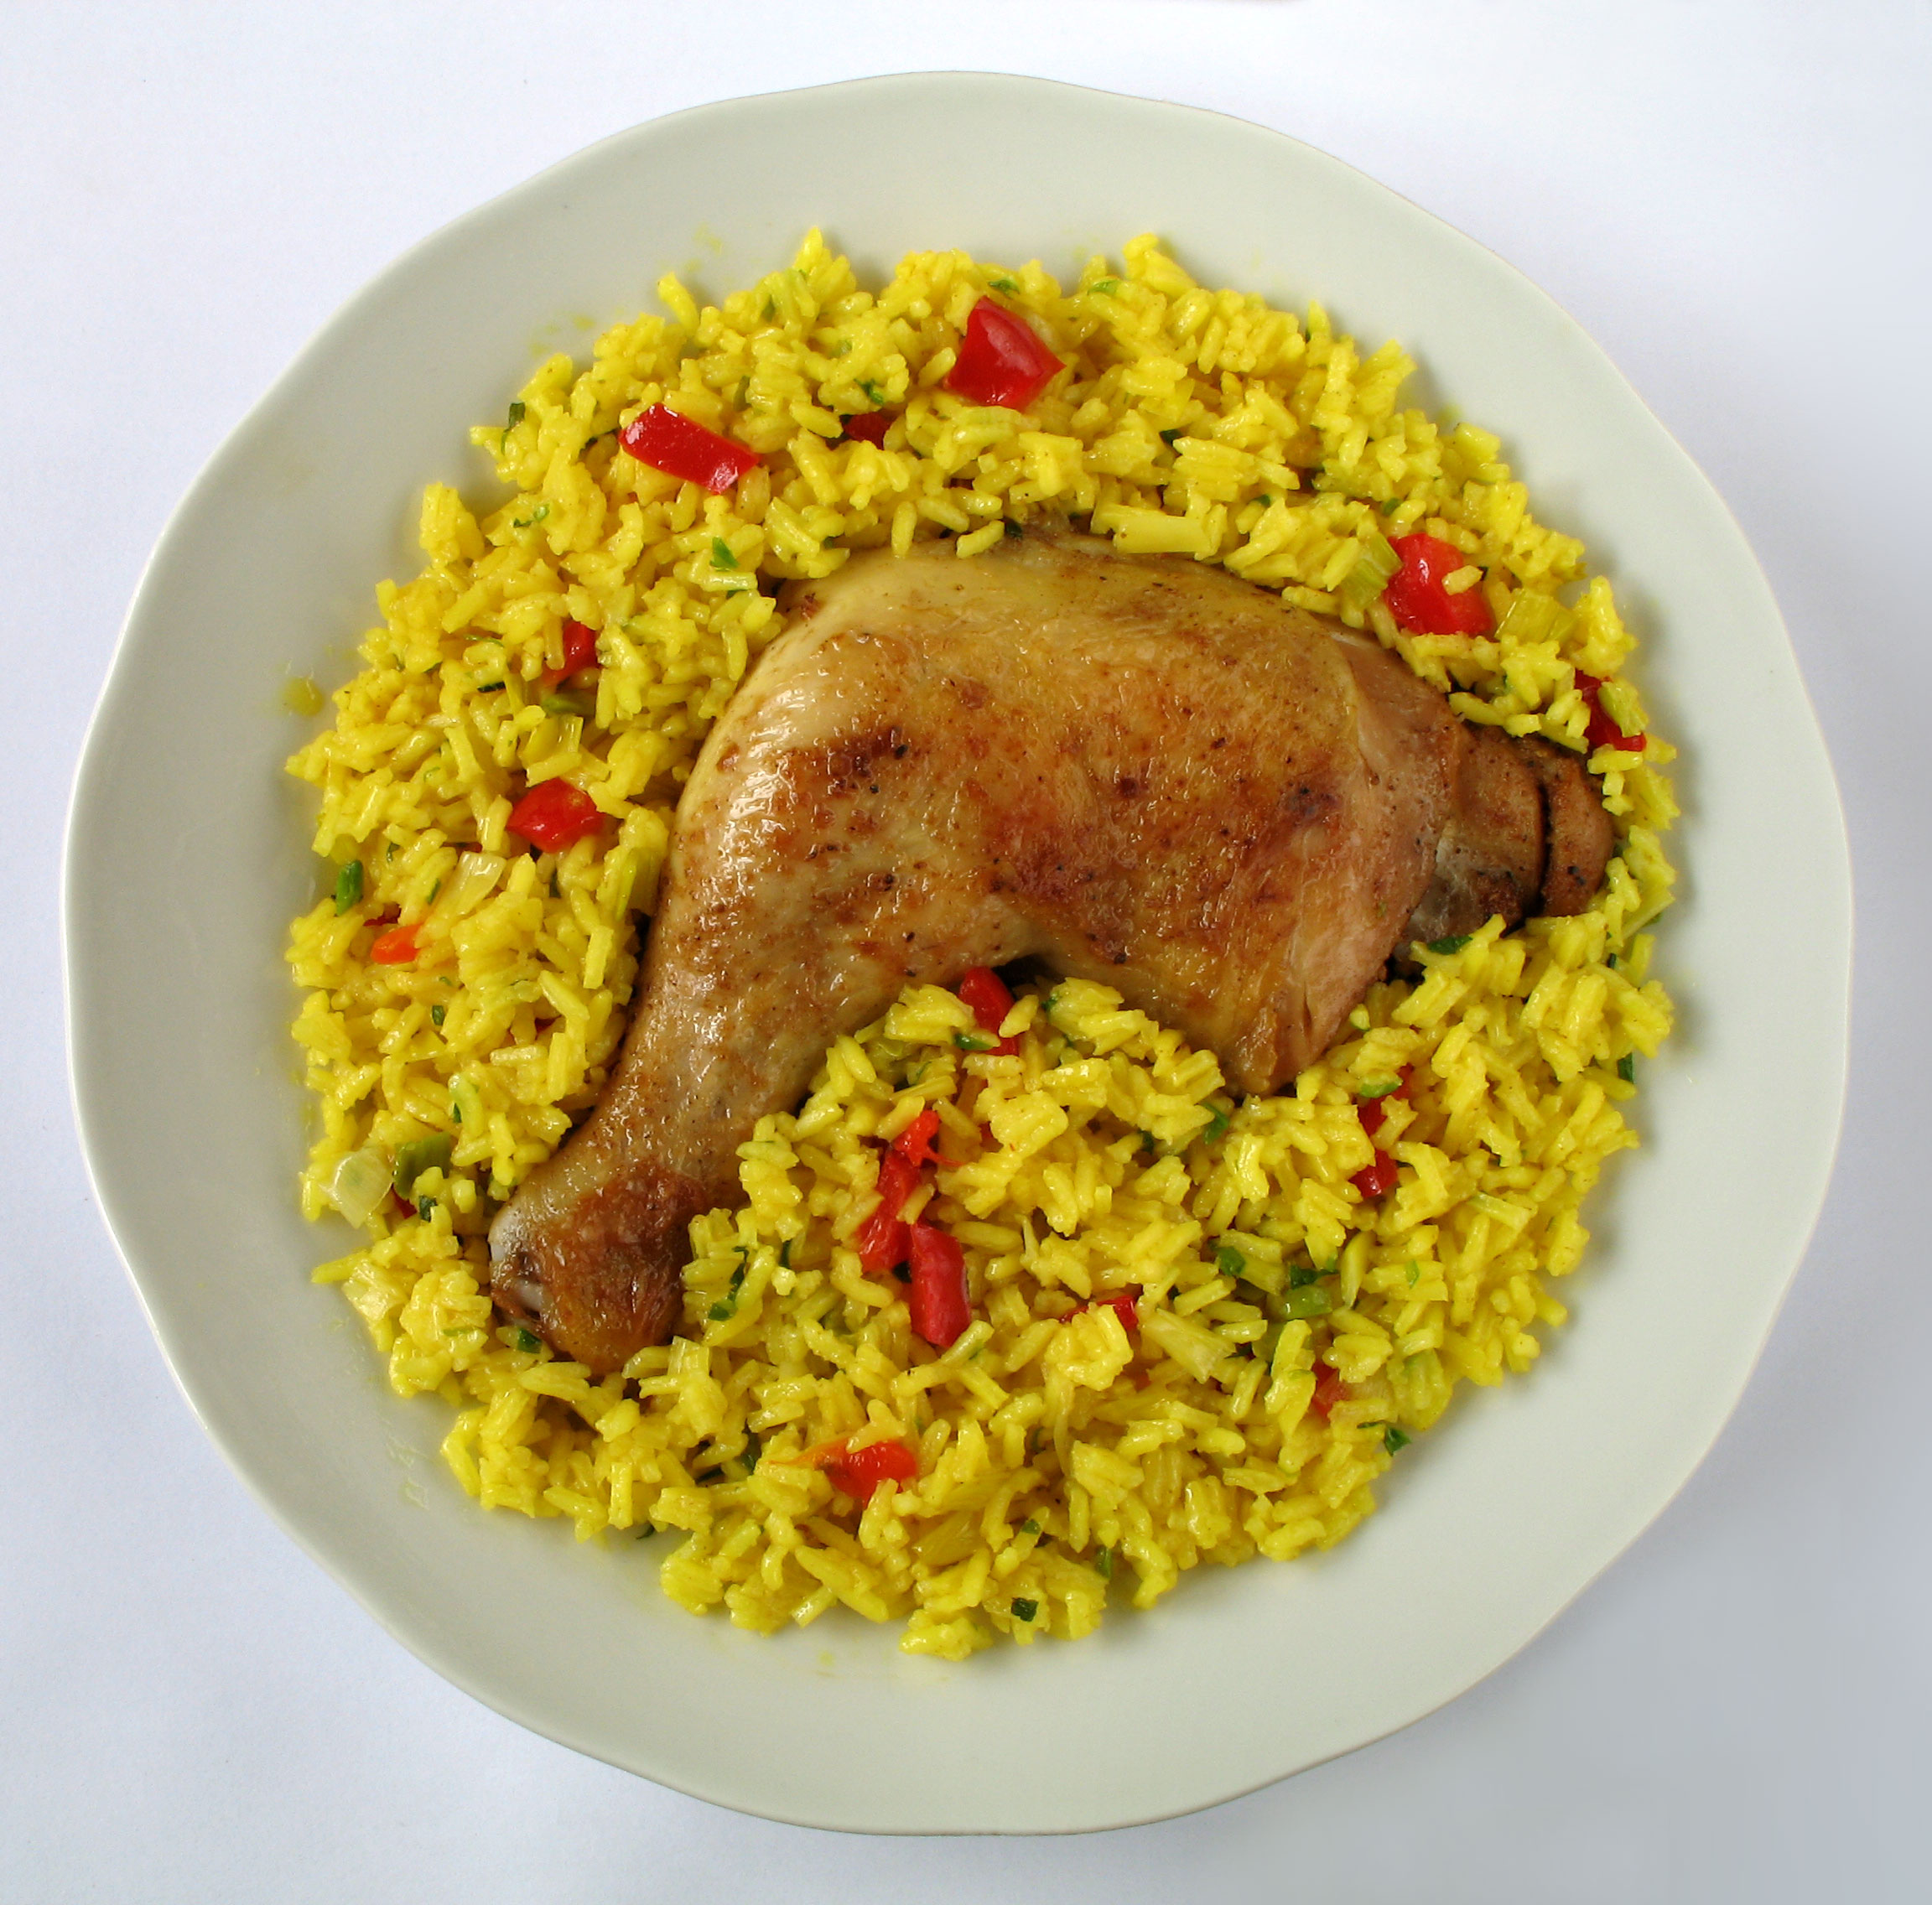 File:Arroz-con-Pollo.jpg - Wikipedia